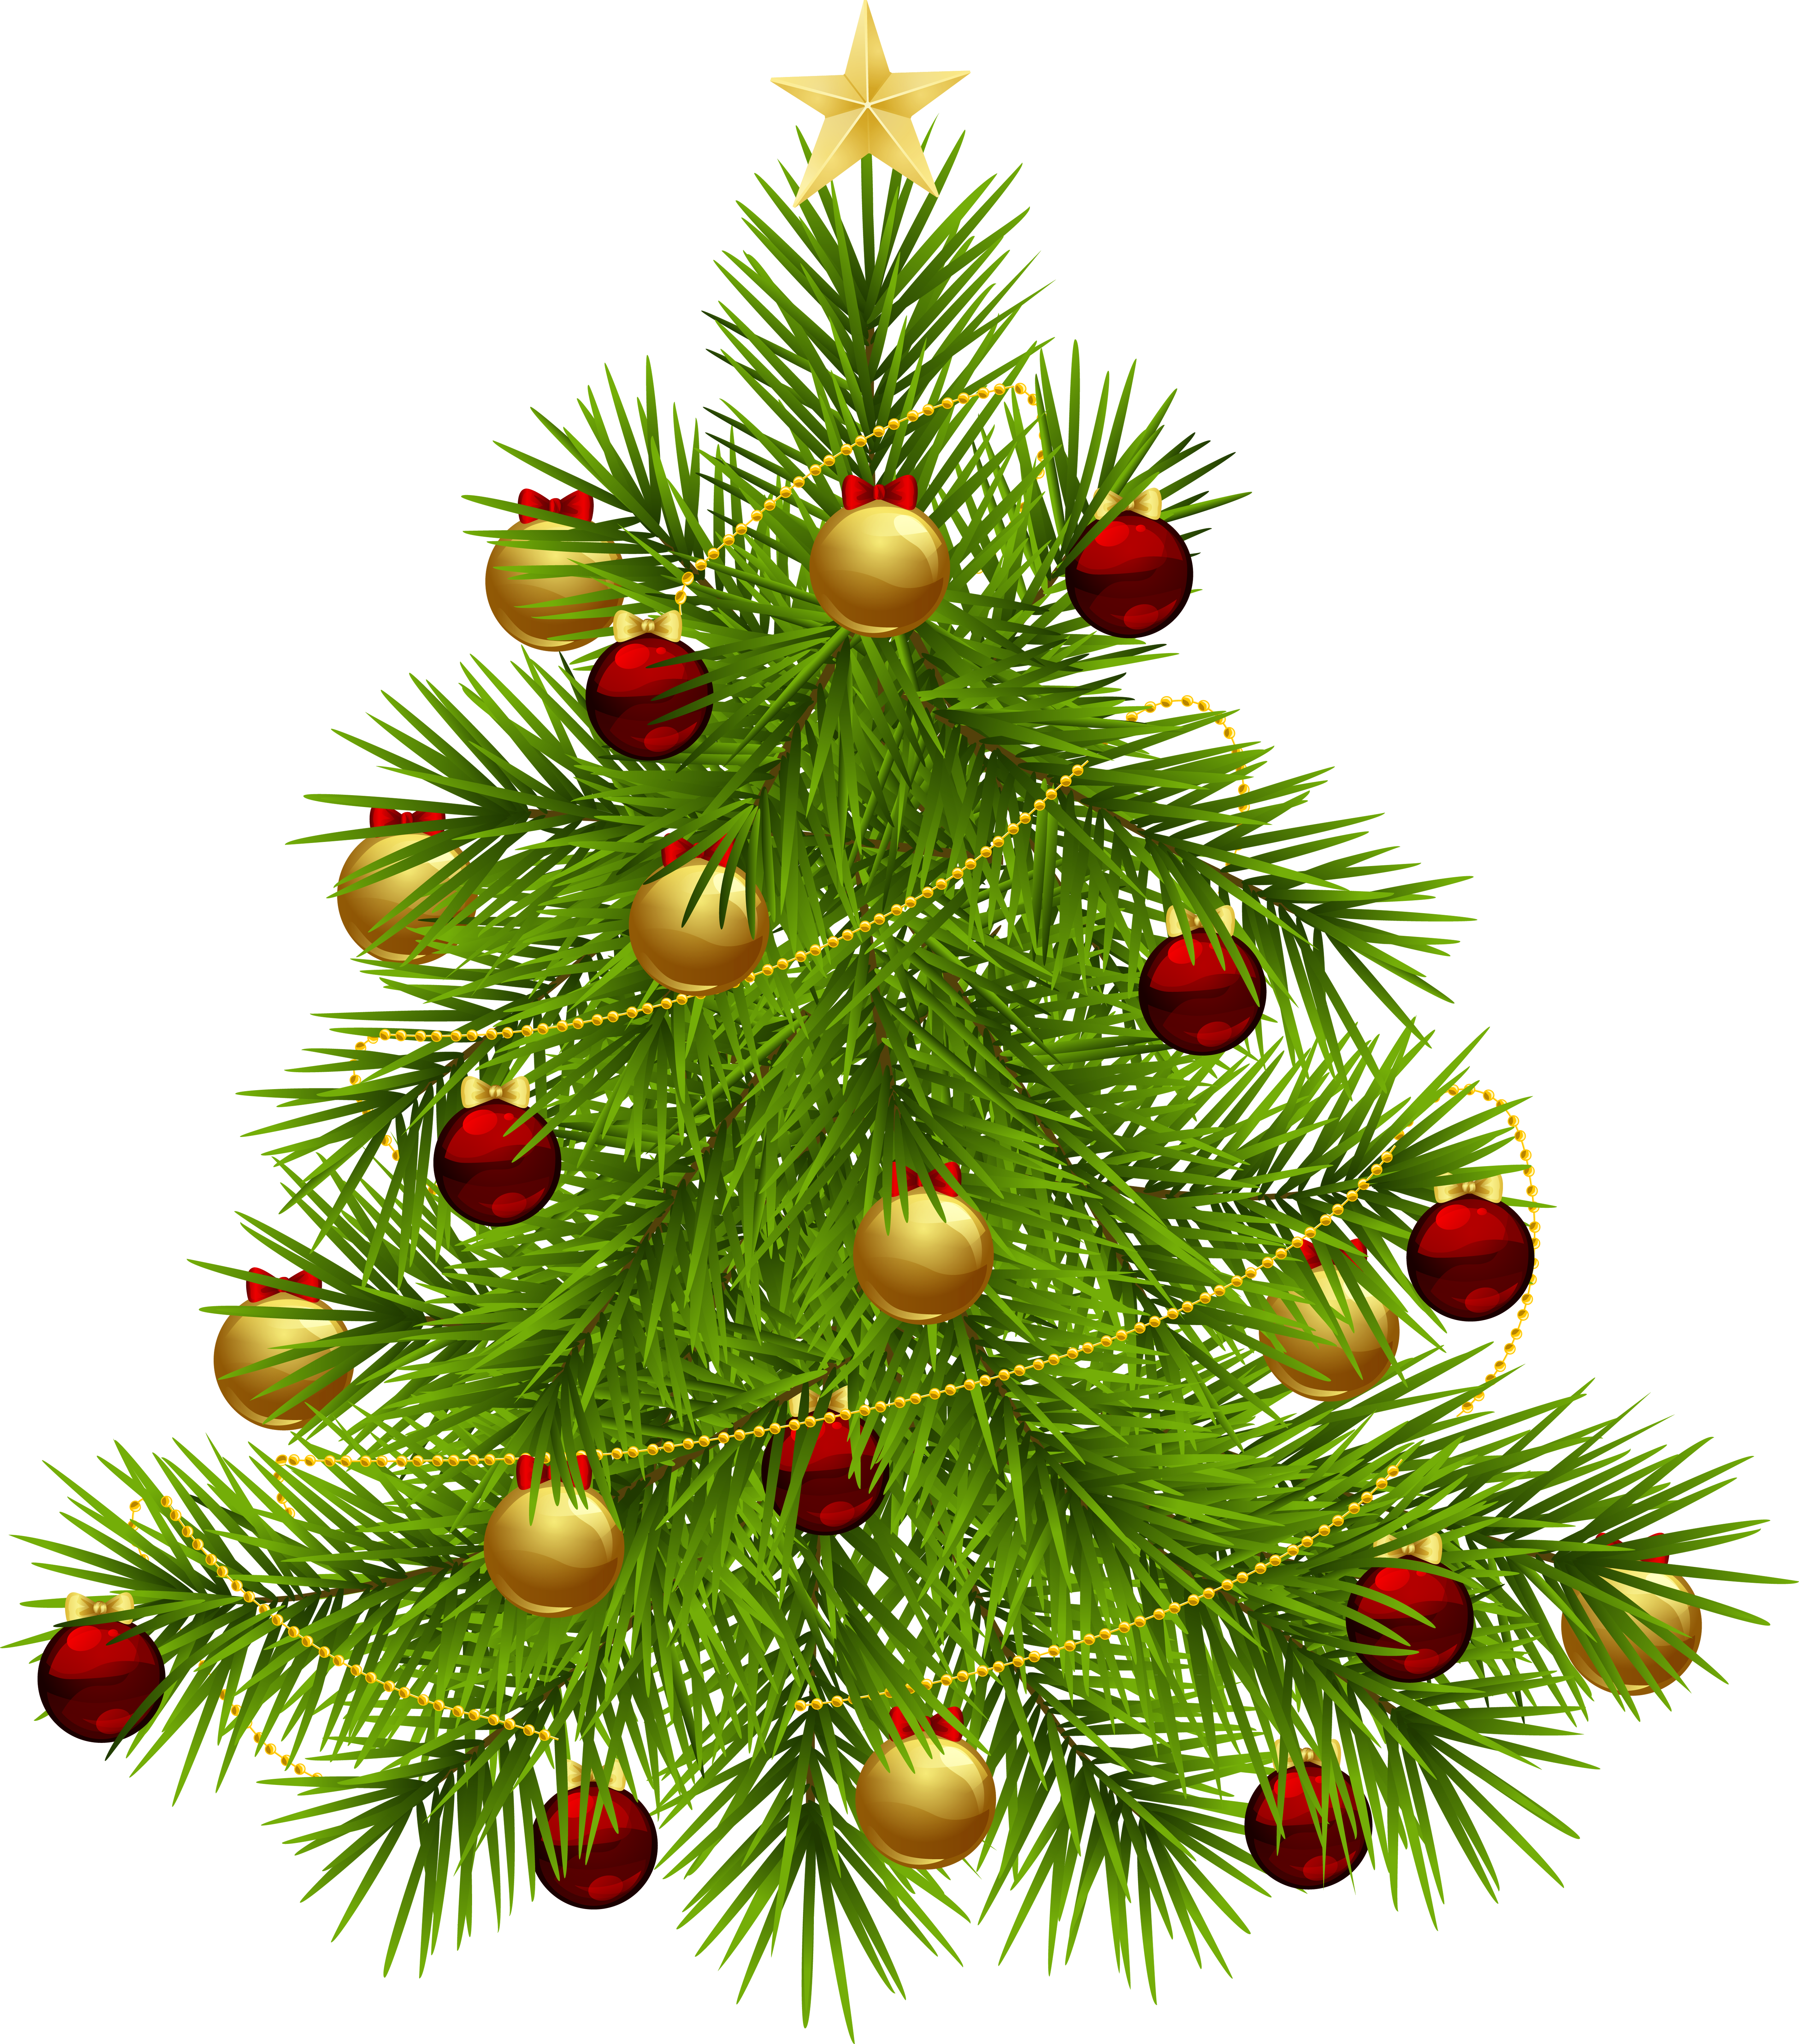 Transparent PNG Christmas Tree with Ornaments.